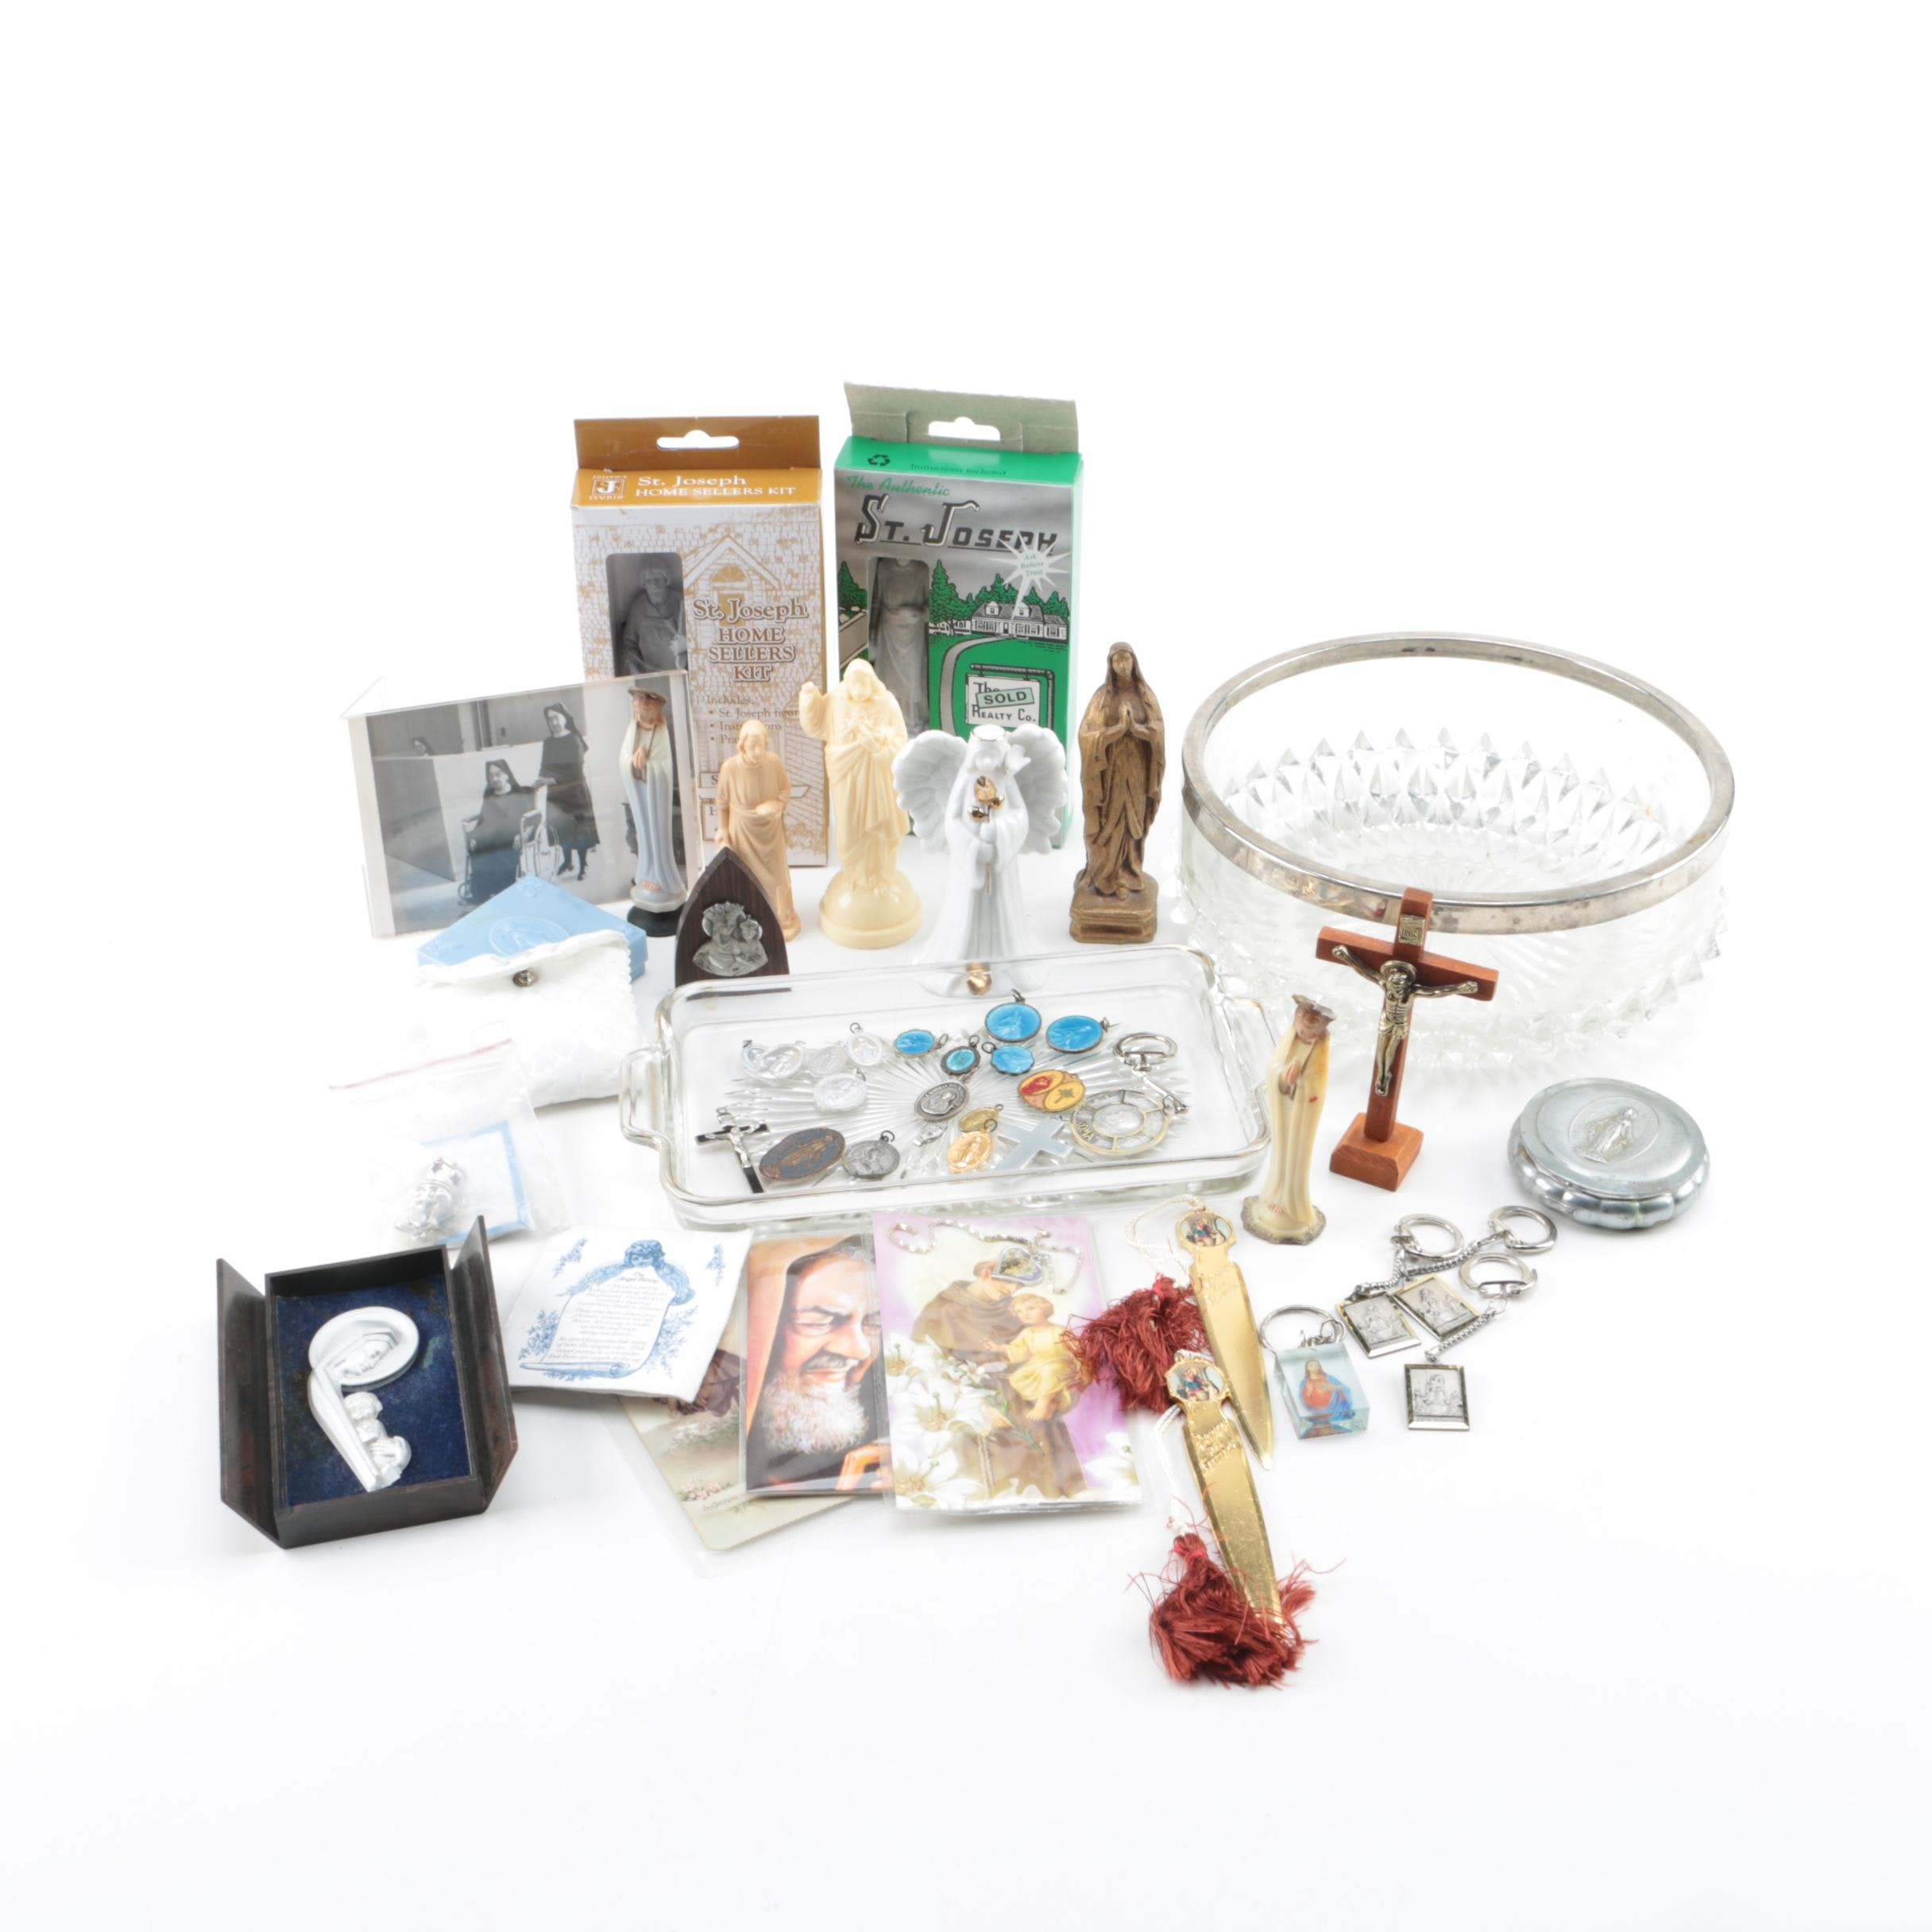 Religious Collectibles And Glassware Dishes